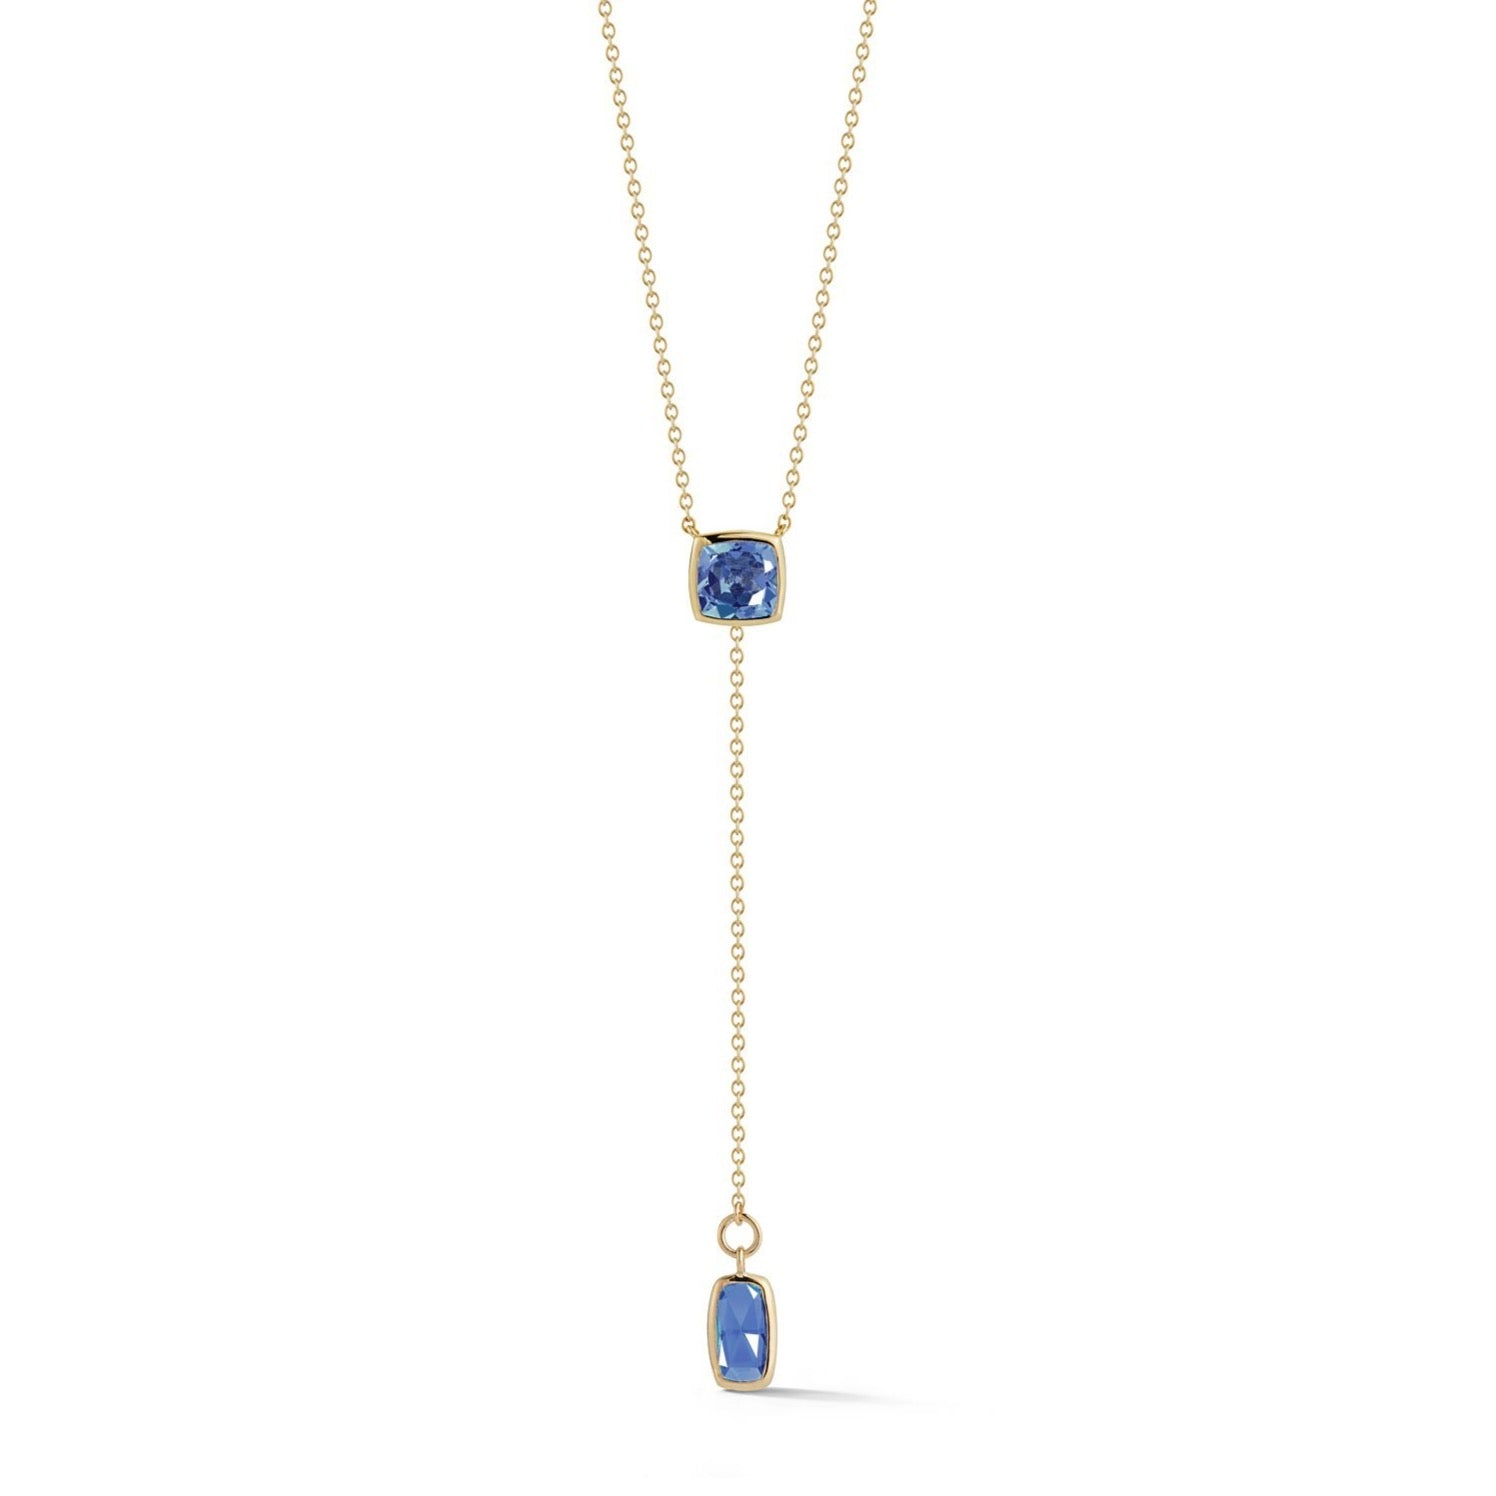 A-FURST-GAIA-LARIAT-NECKLACE-LONDON-BLUE-TOPAZ-YELLOW-GOLD-C1702GUL